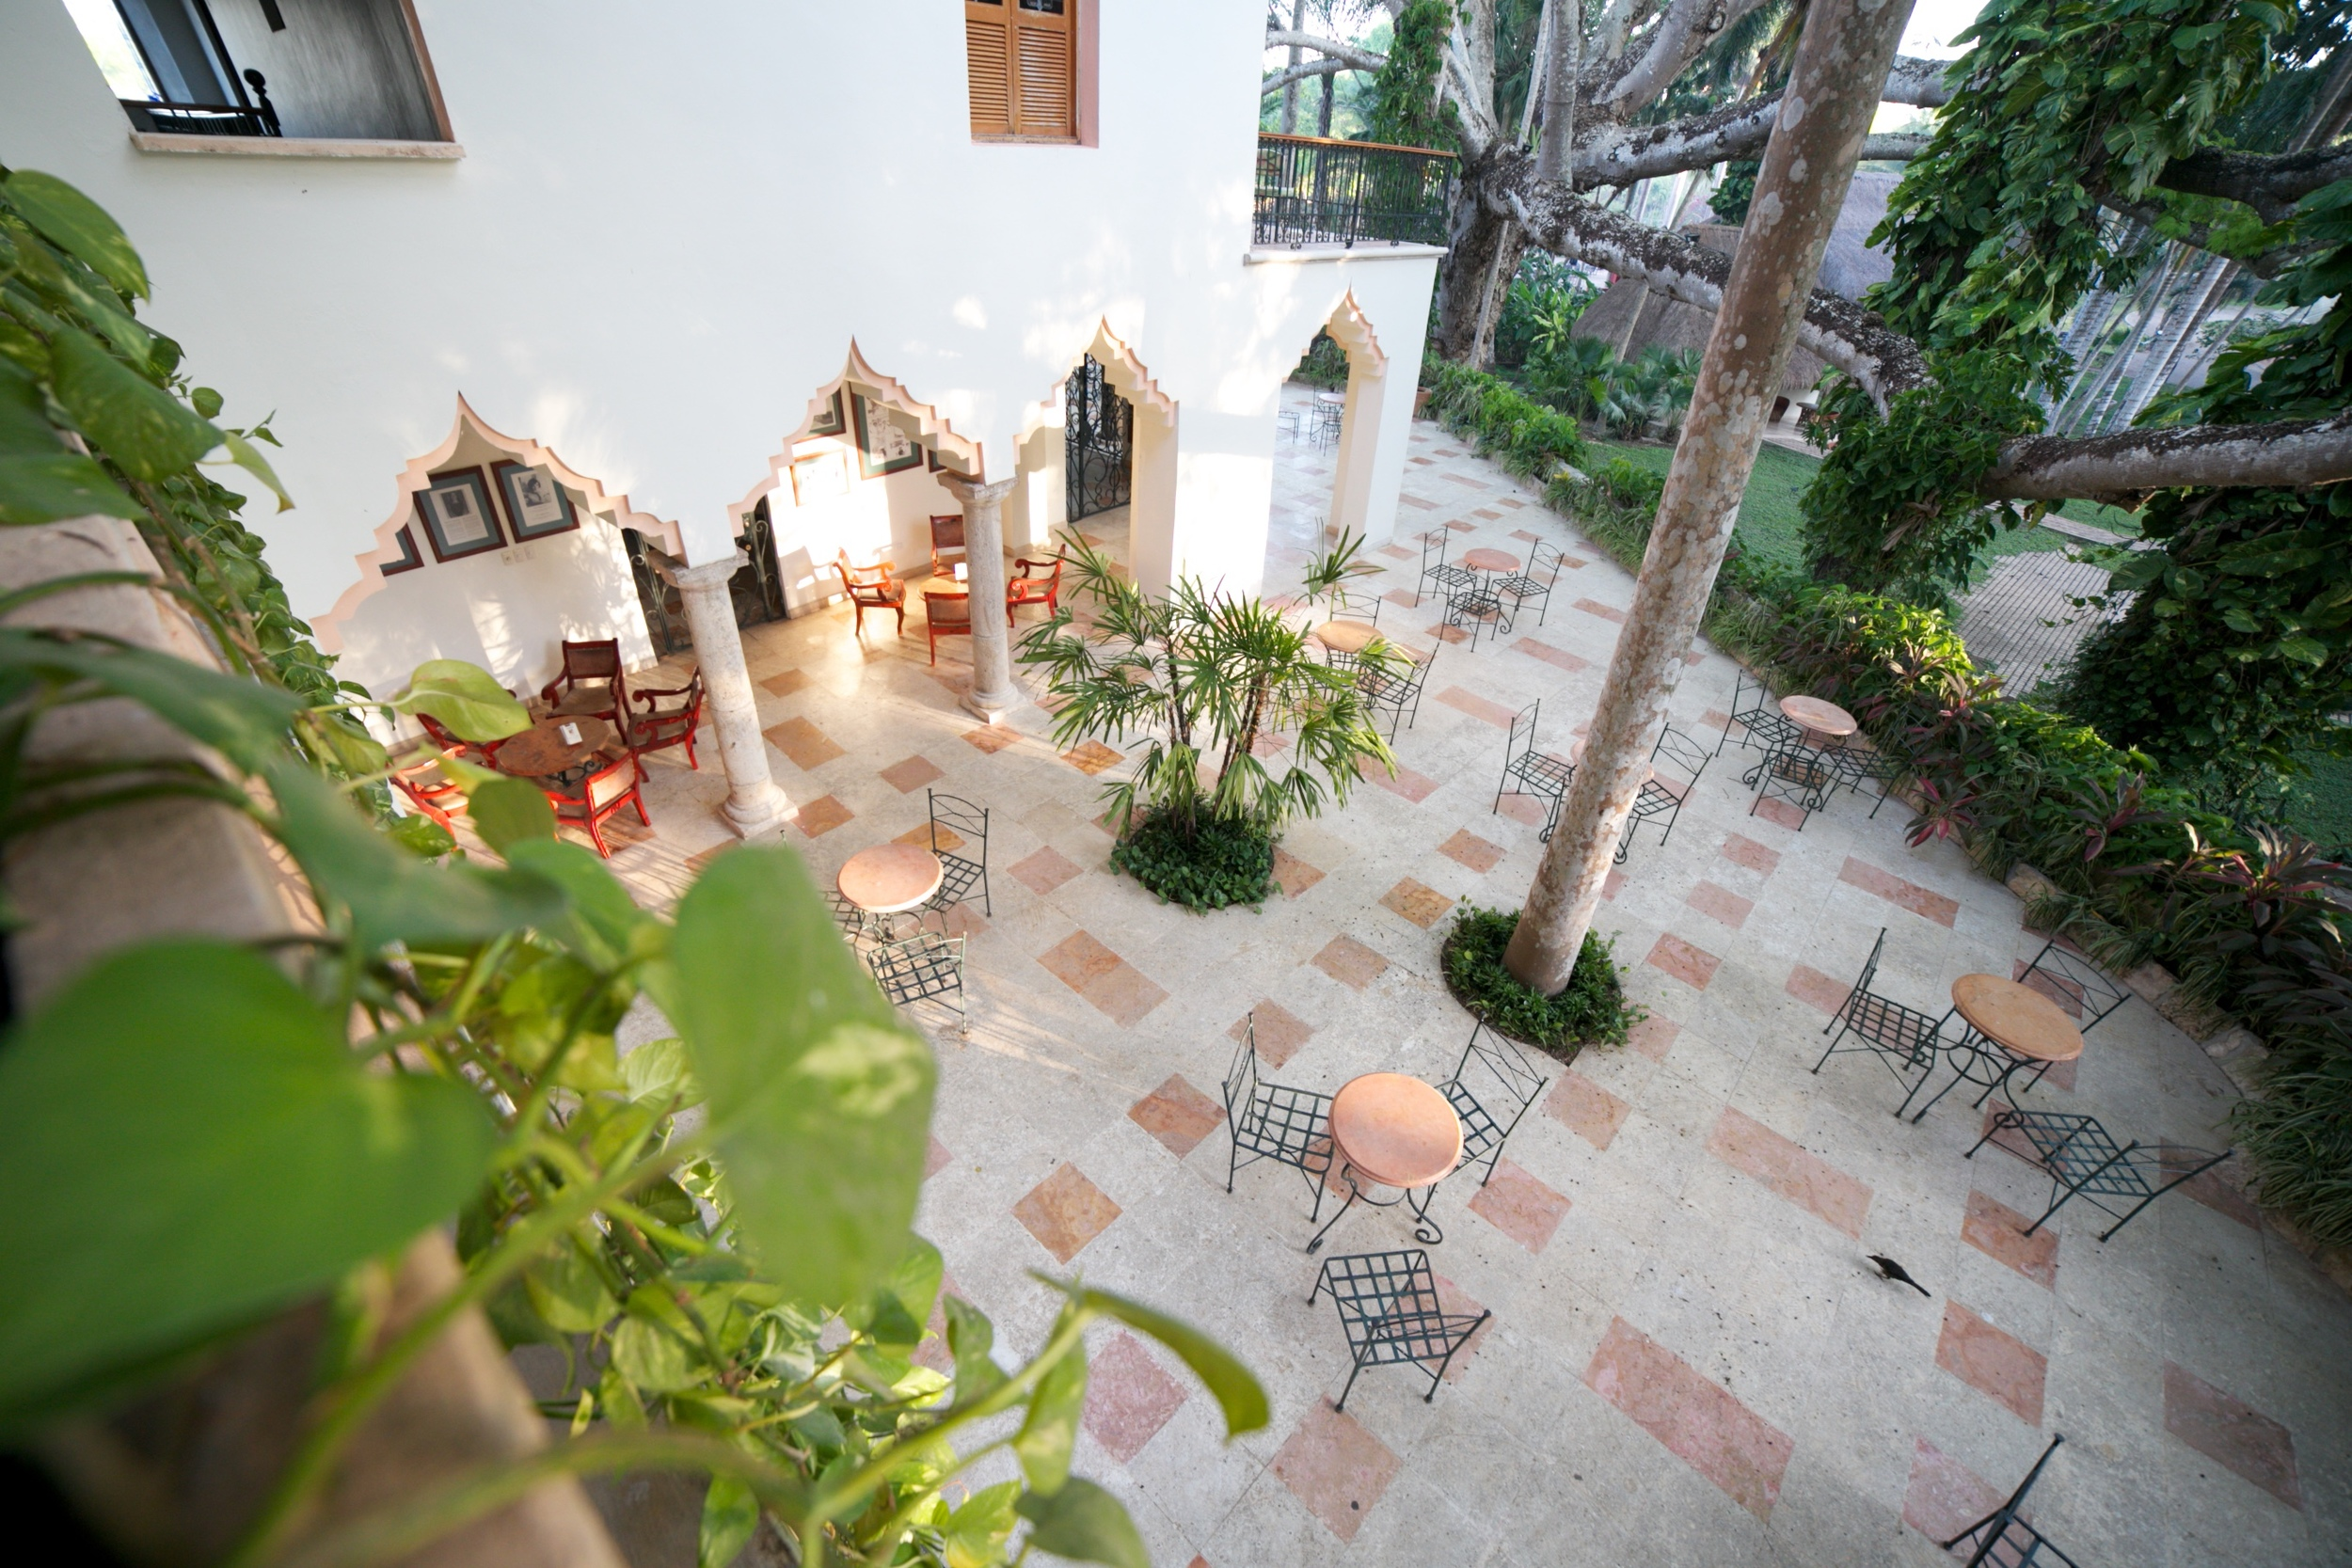 A beautiful old world Mexican hotel in the jungle -The Lodge at Chichen Itza.